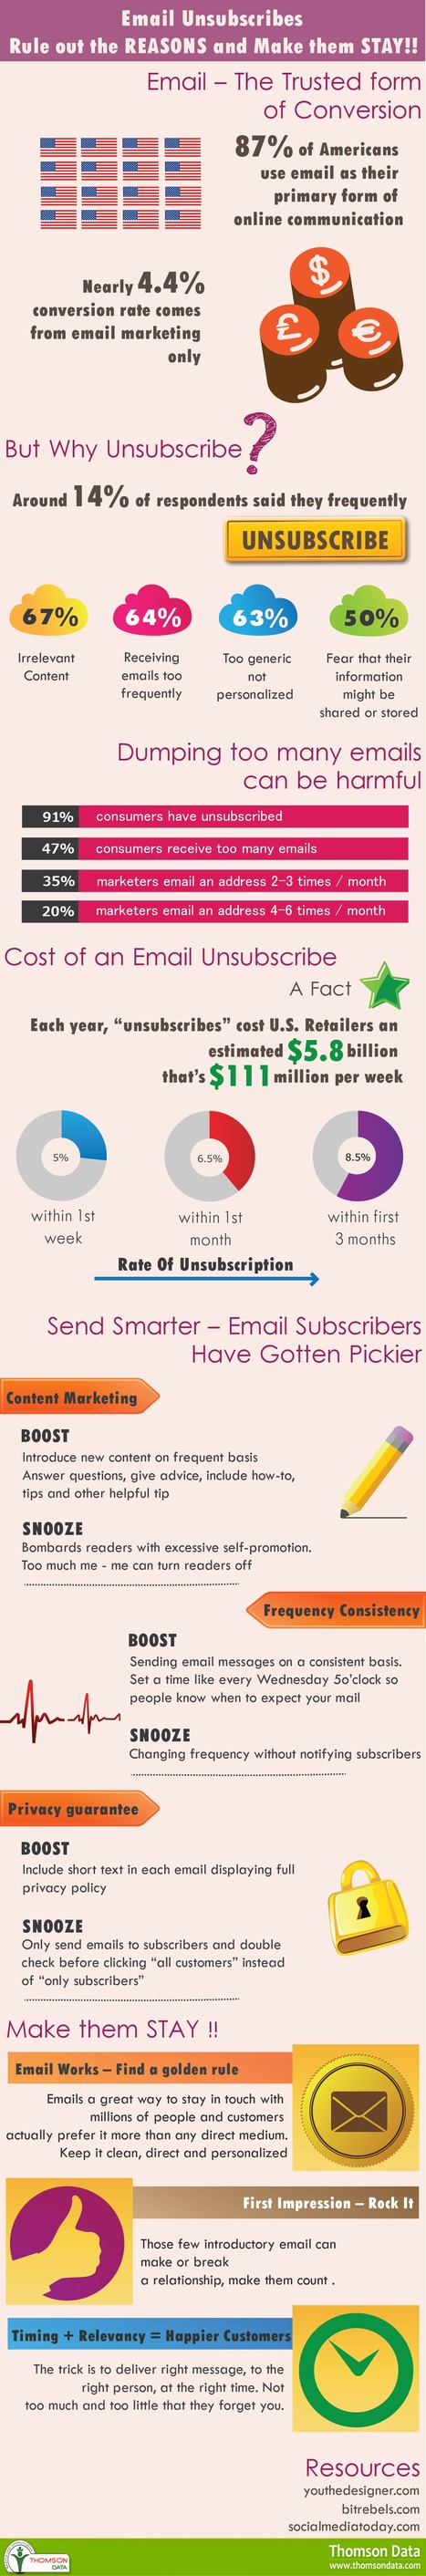 Email Unsubscribes - Rule out the REASONS and Make them STAY! [Infographic] | Buy Mailing List, Email List, Sales Leads - Thomson Data LLC. | USA | Scoop.it